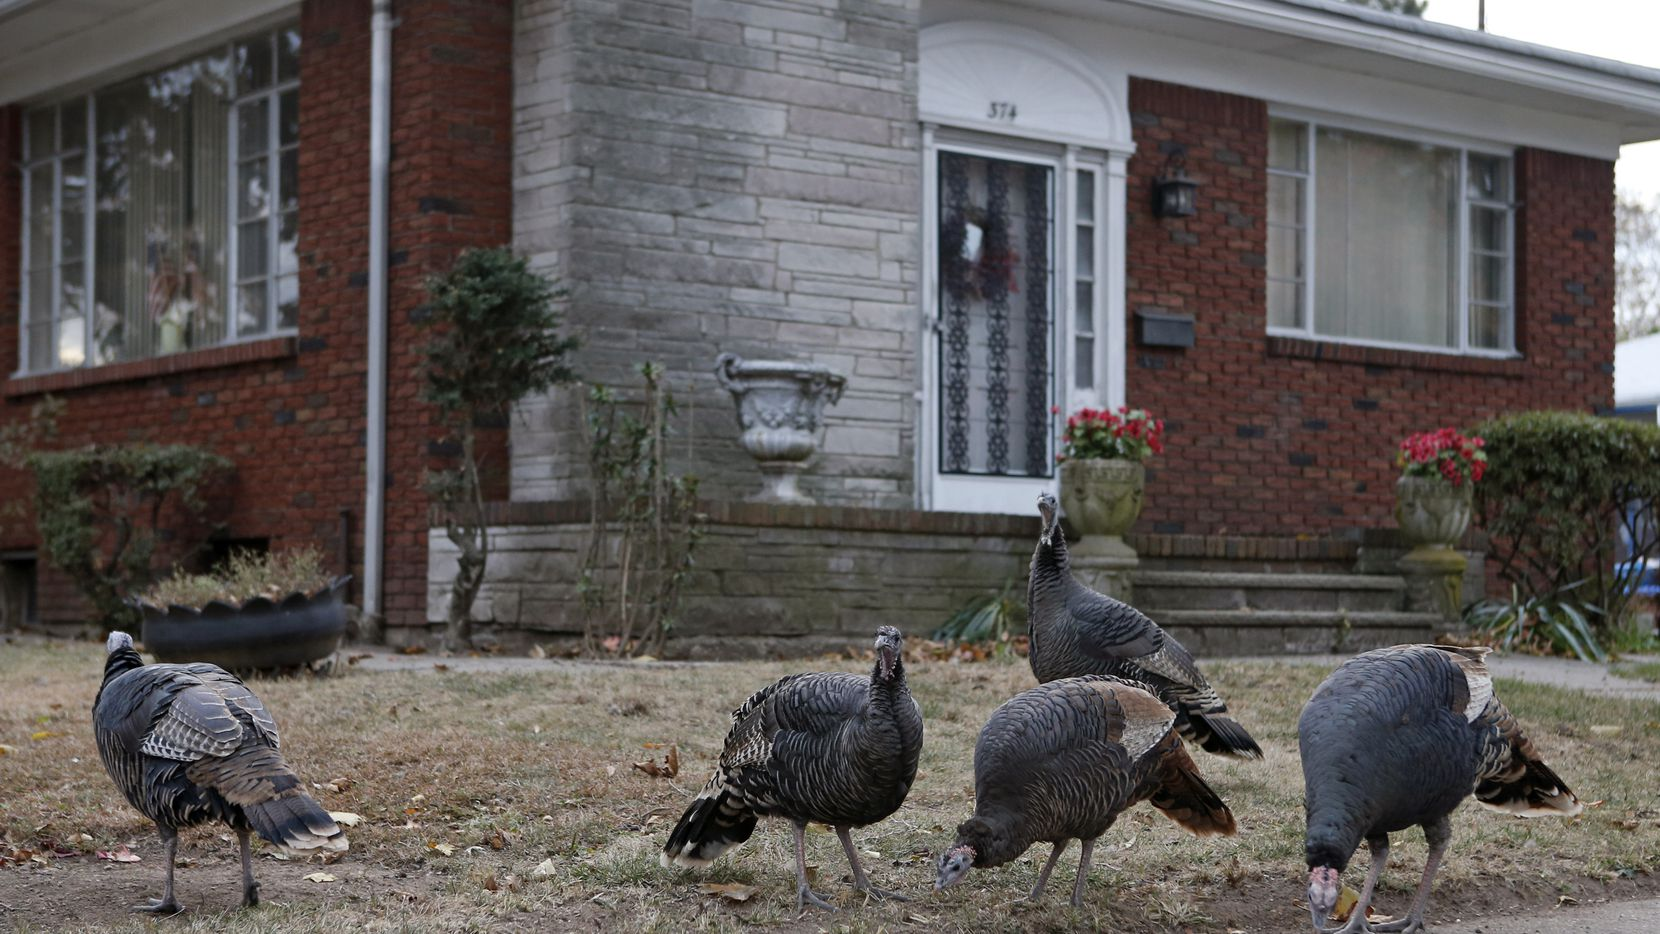 Wild turkeys nibble in front of a house on Staten Island.